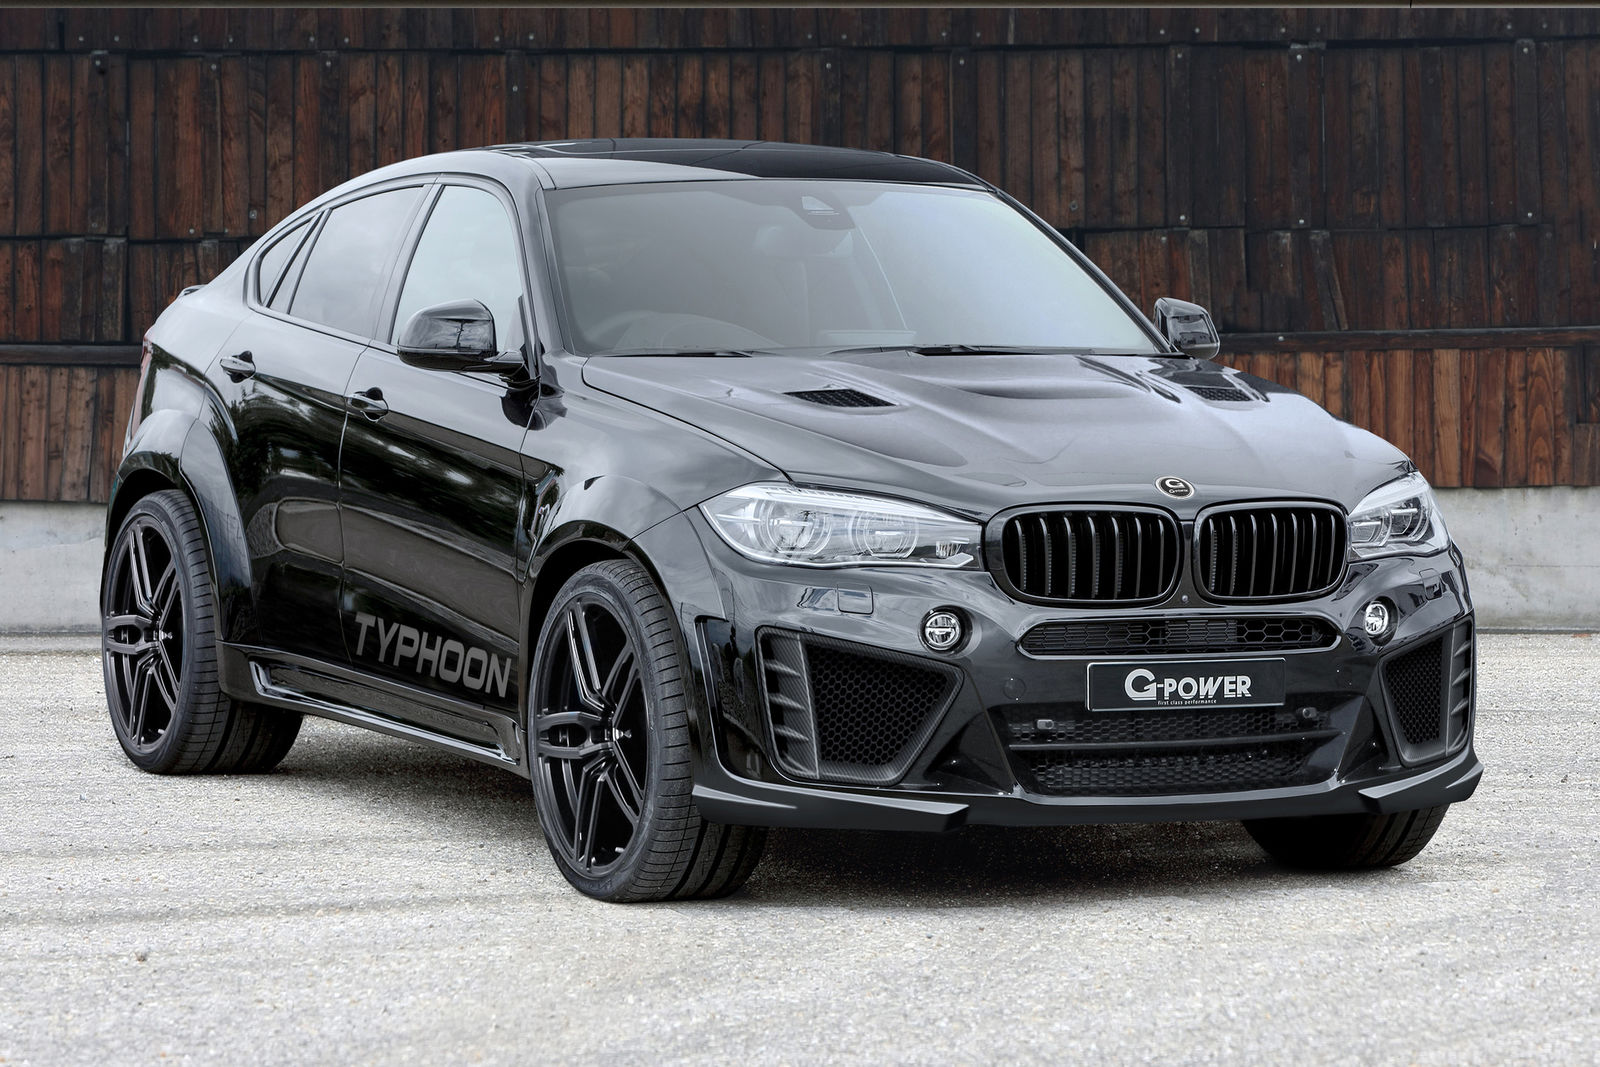 G Power Unveils Typhoon Tuning Kit For Bmw X6m It Has 750